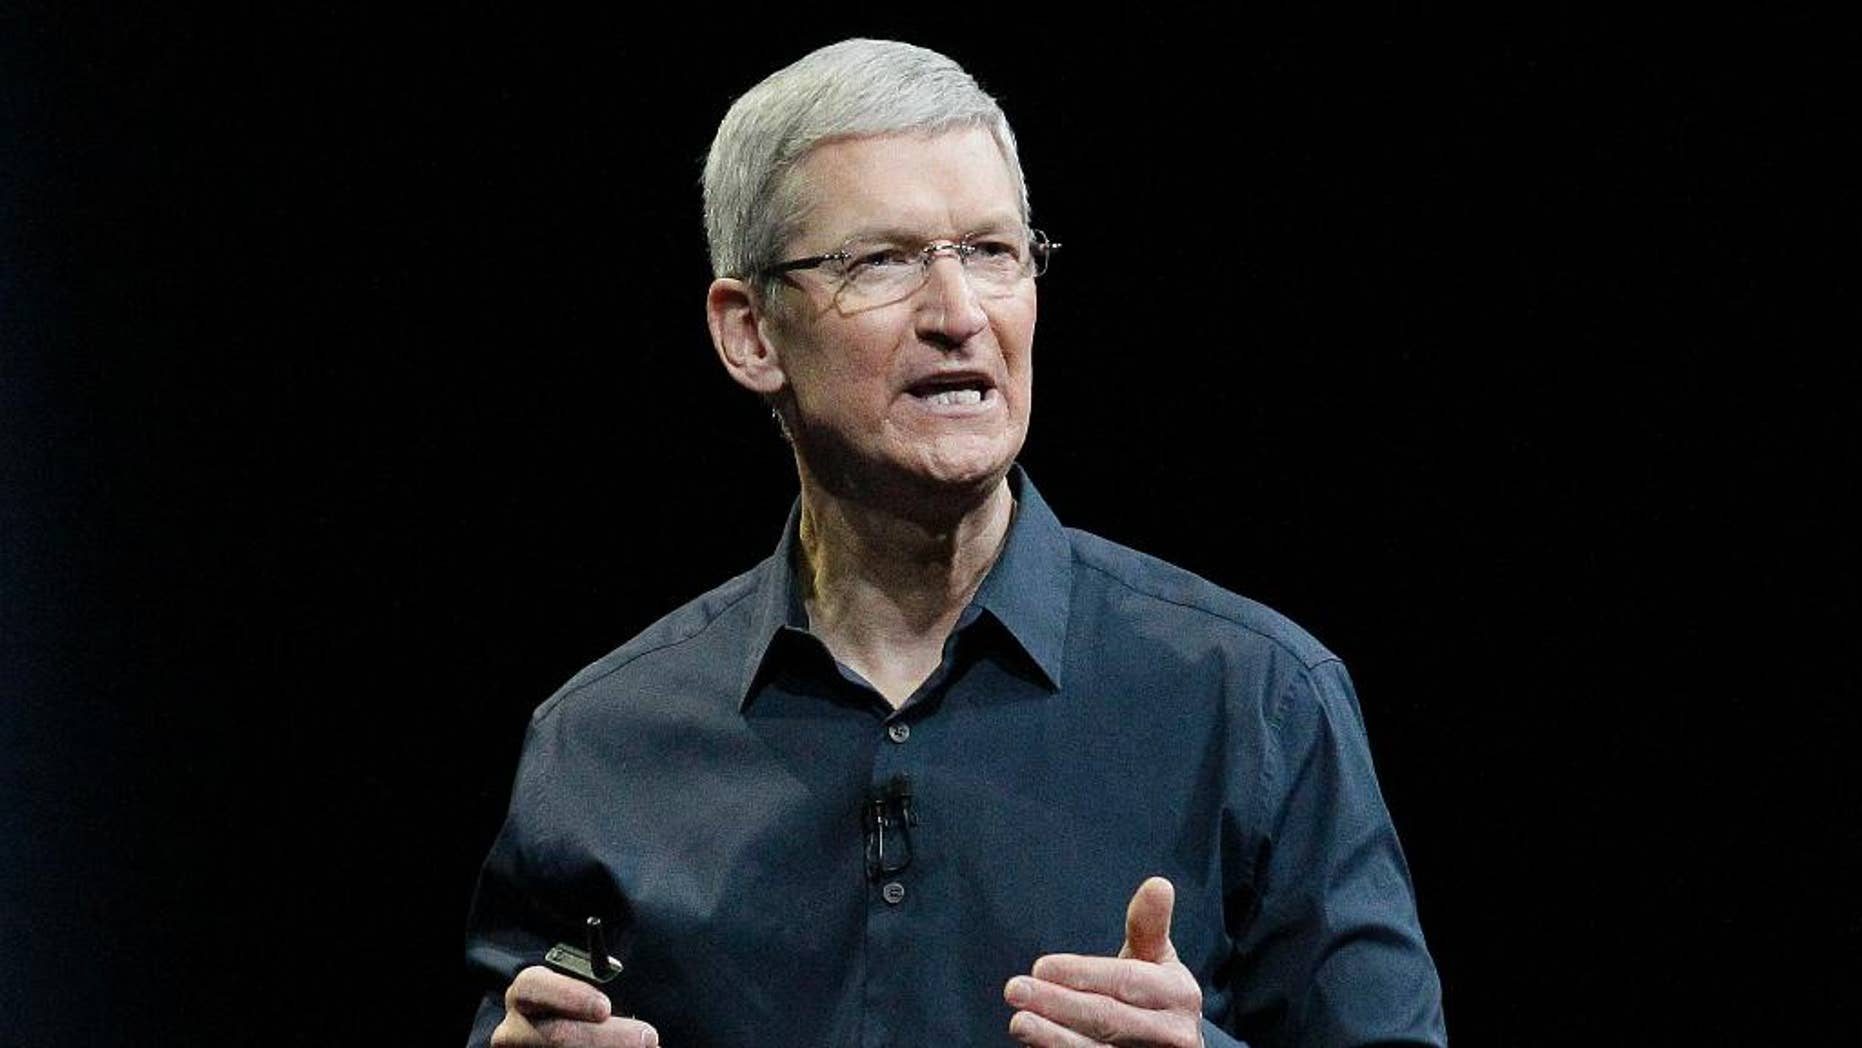 """FILE - In this June 2, 2014, file photo, Apple CEO Tim Cook speaks at the Apple Worldwide Developers Conference event in San Francisco. Cook says that so-called """"religious objection"""" legislation being introduced in a number states like Indiana and Texas is dangerous. In an op-ed piece for The Washington Post, Cook said that the bills under consideration """"have the potential to undo decades of progress toward greater equality."""" (AP Photo/Jeff Chiu, File)"""